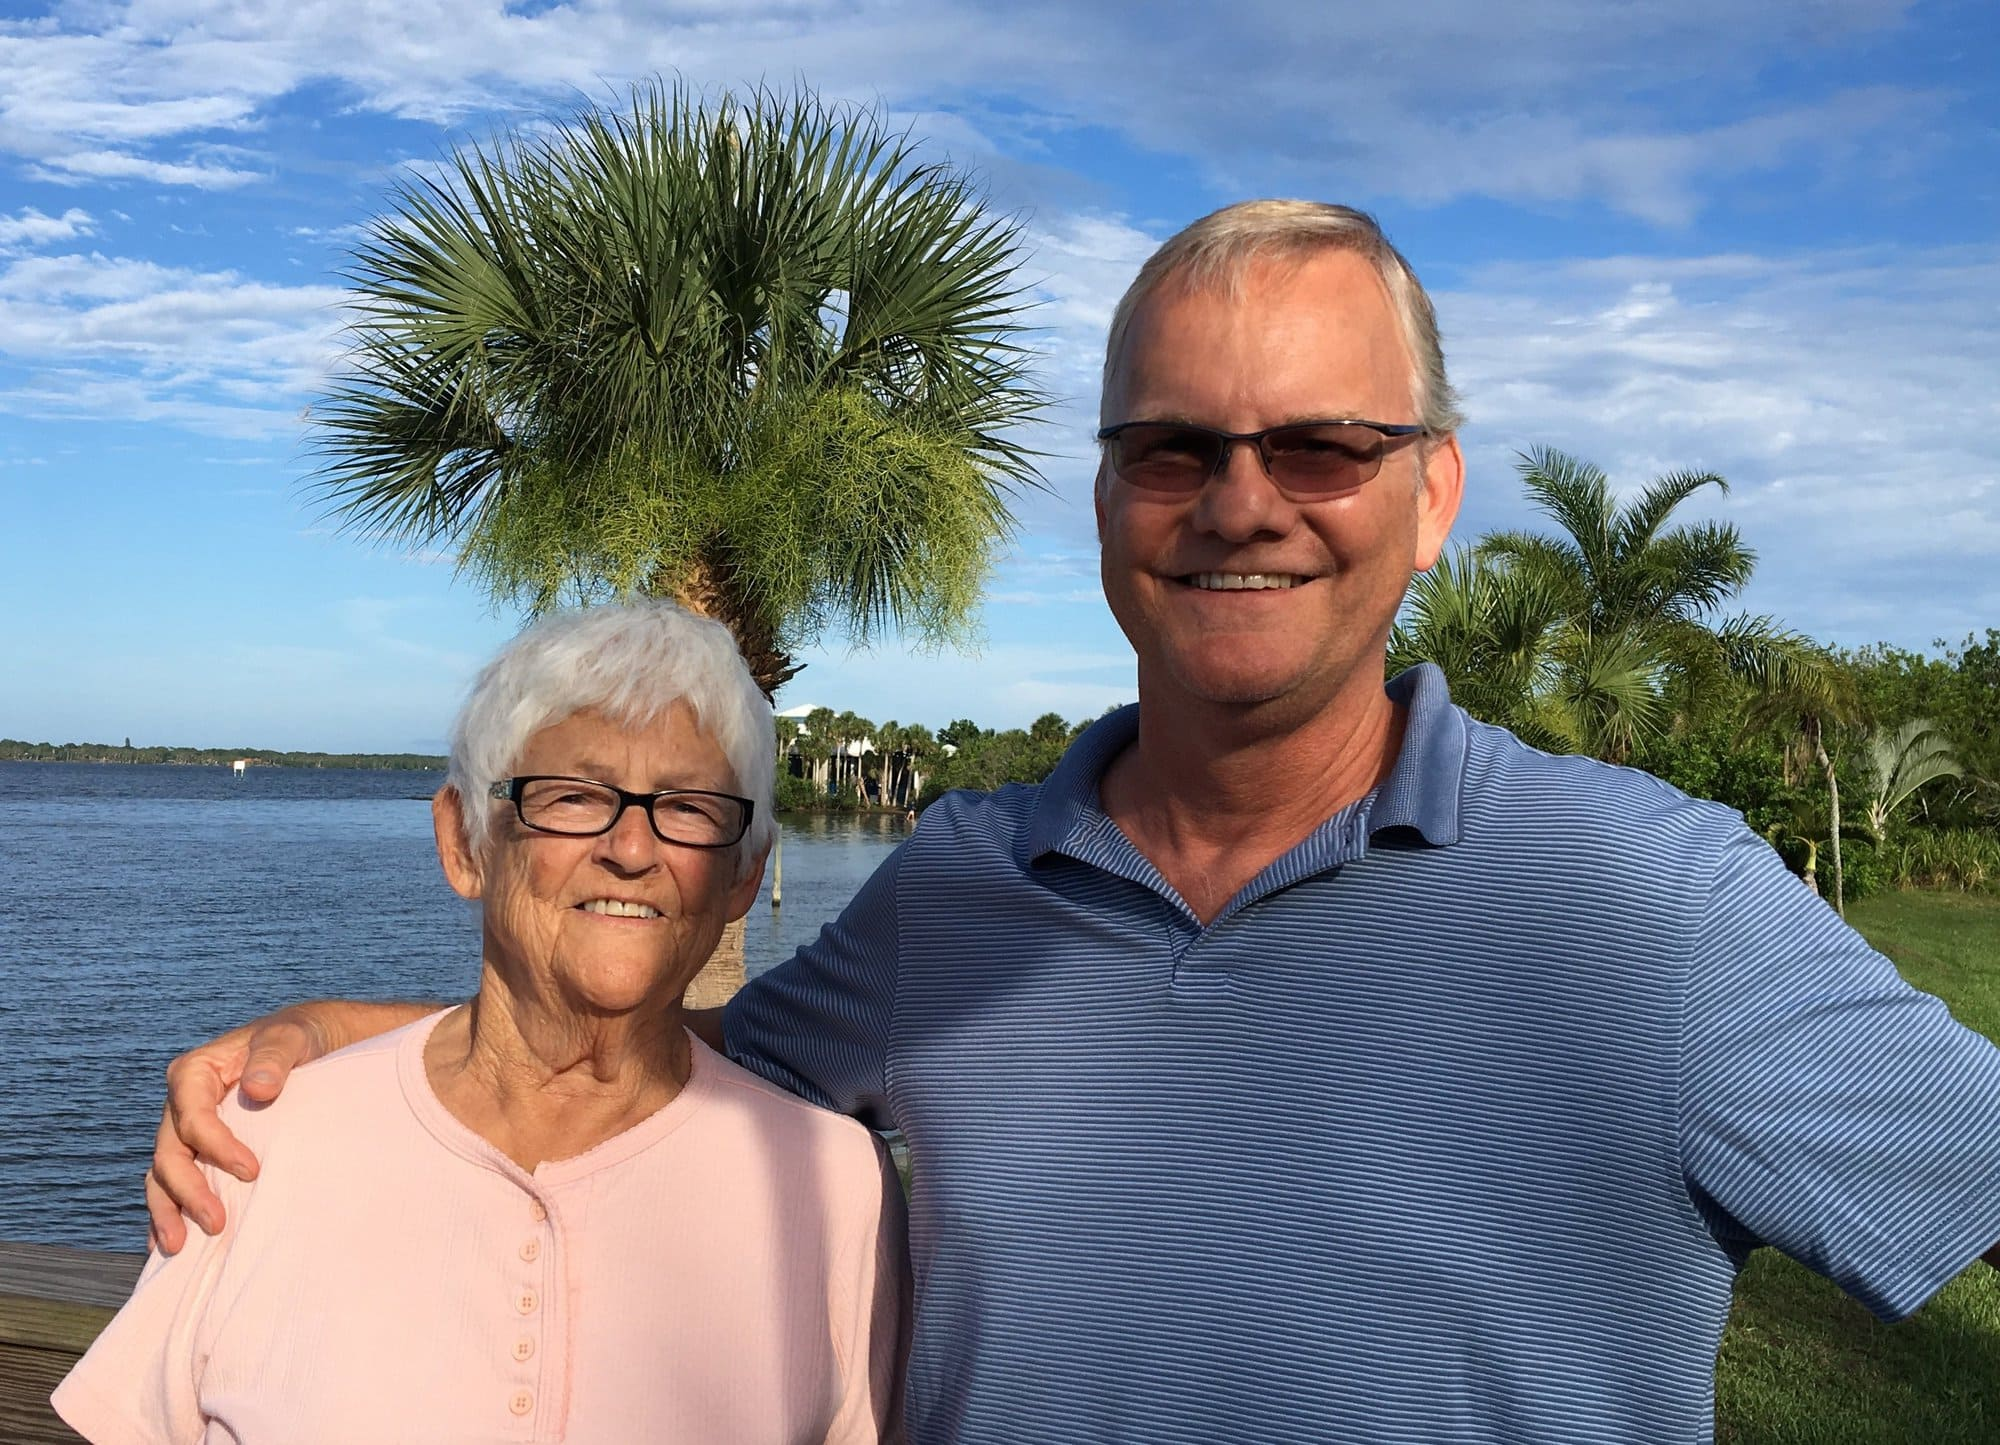 Norm and Mom on the waterfront, palm trees behind